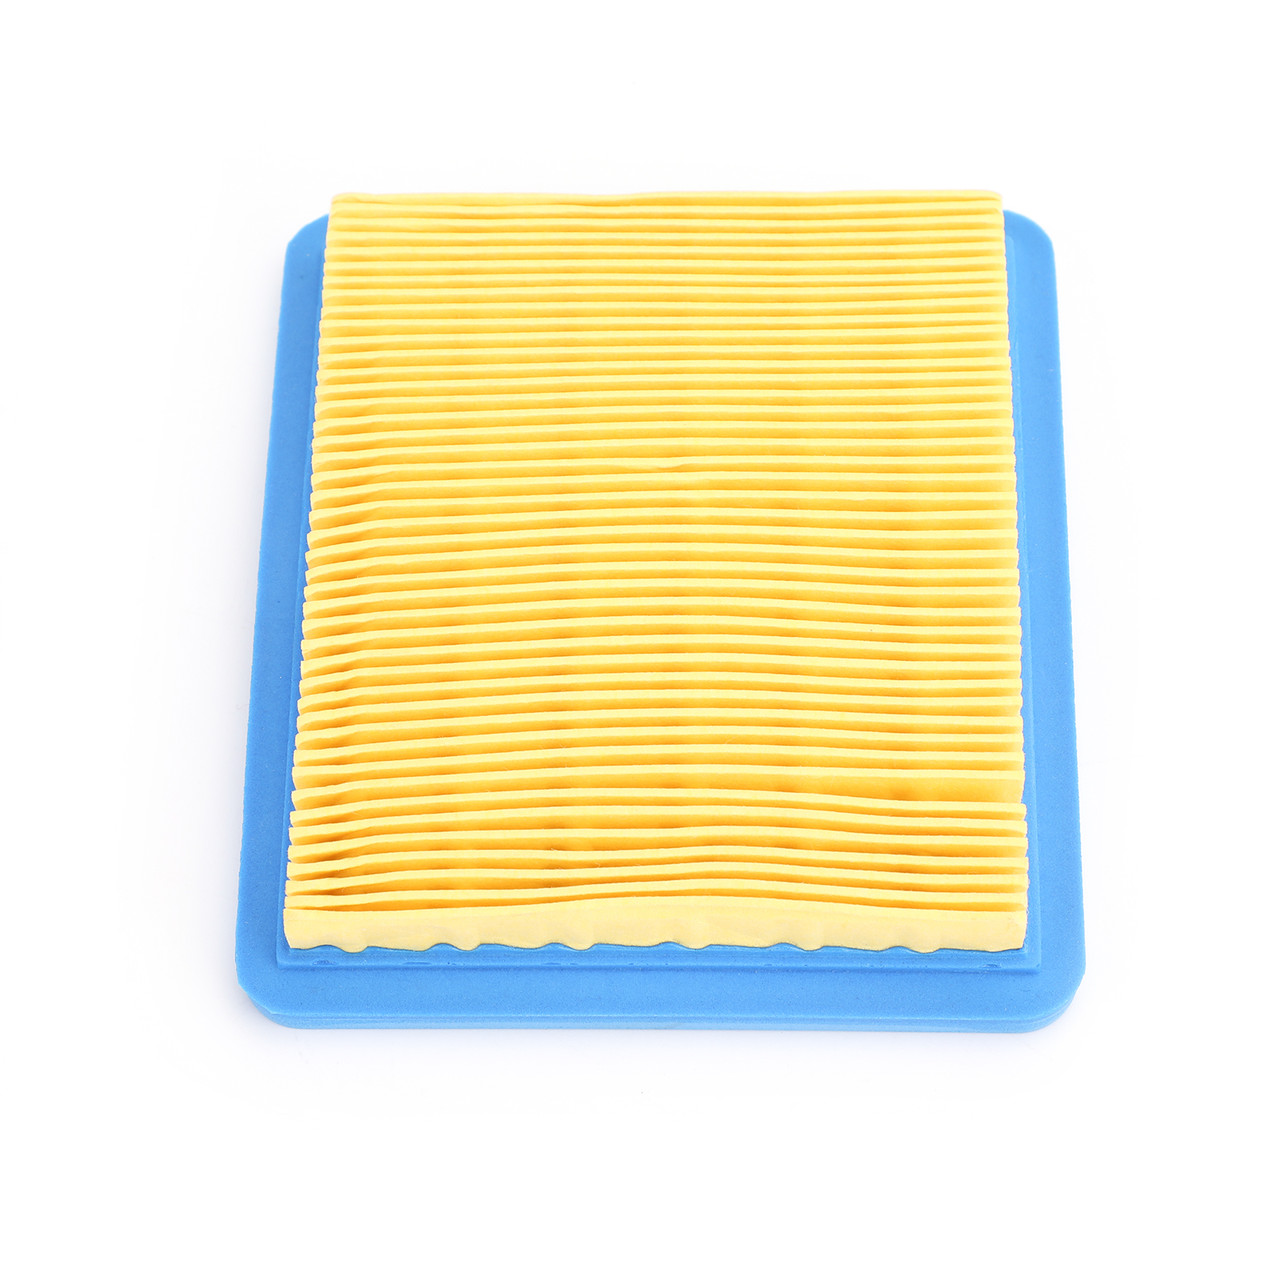 Air Filter Cleaner For Honda CHF50 Metropolitan 02-09 CHF50A Metropolitan 04 CHF50S 06-09 CHF50P 02-05 NPS50 Ruckus 03-17 NPS50S 04-09 Blue